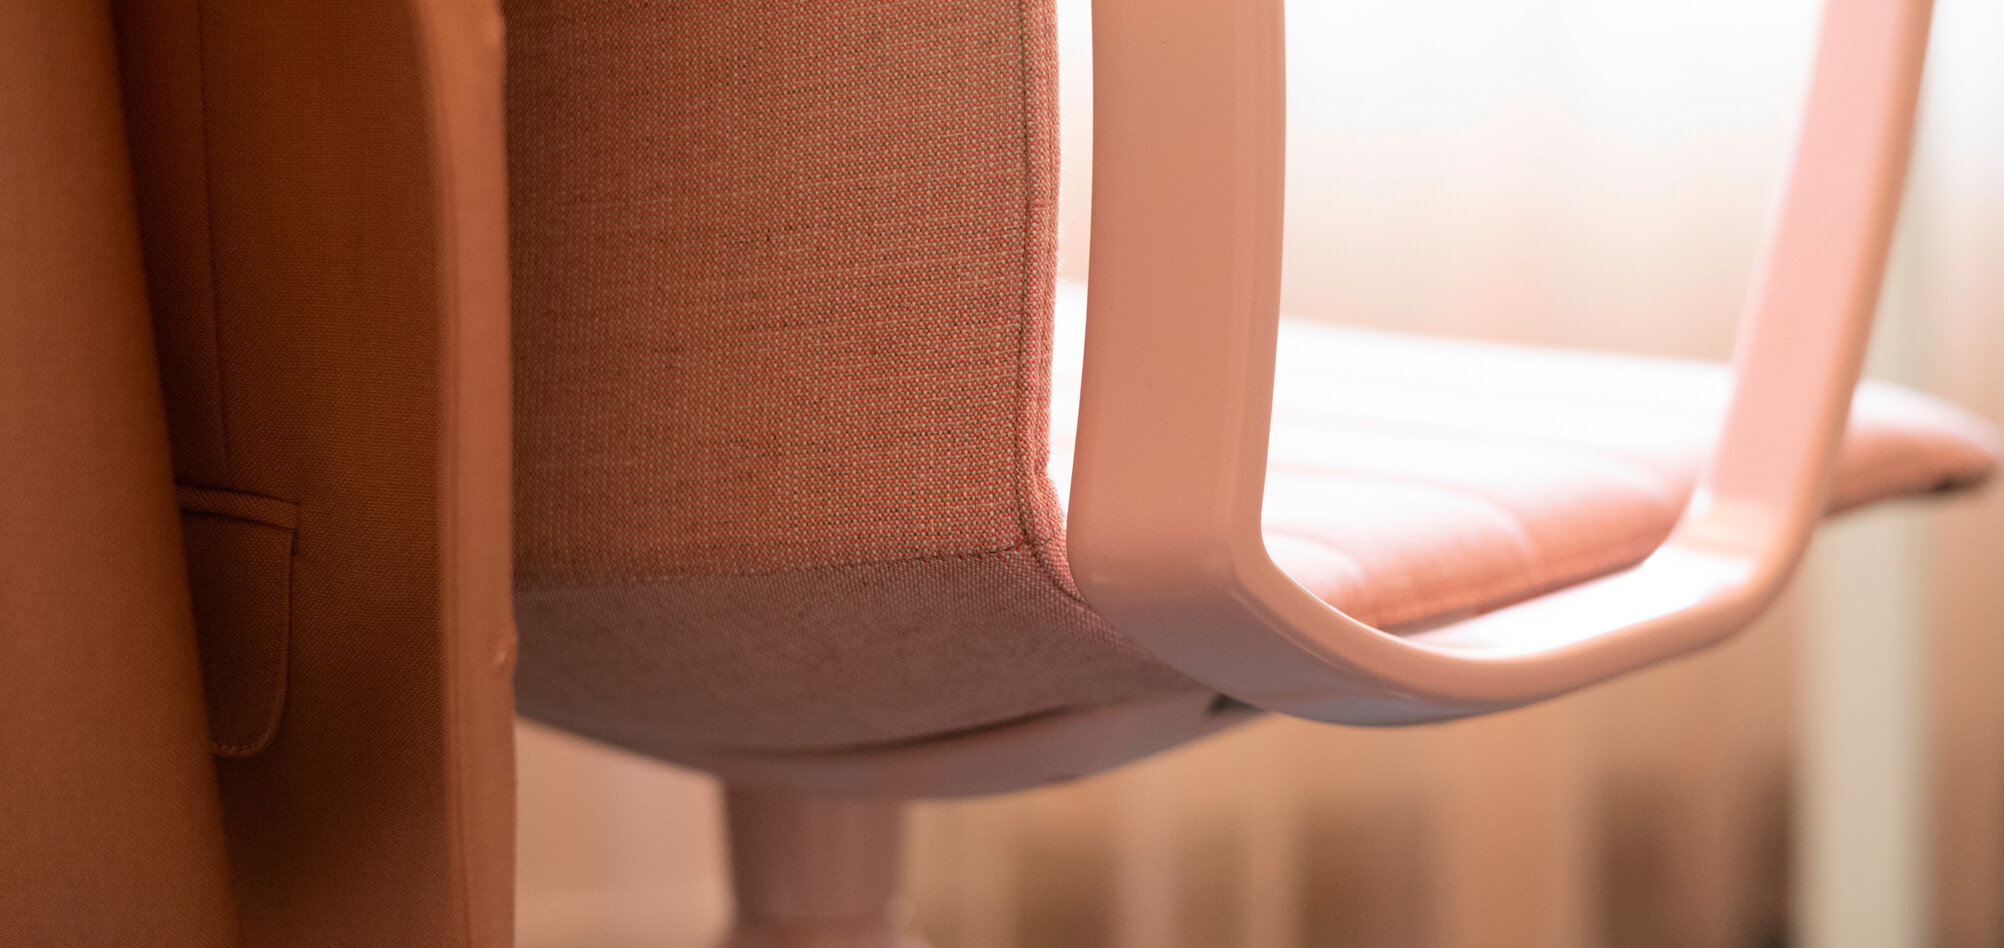 Royal Ahrend Well trestle base chair fully upholstered in pink at Kvadrat store in Amsterdam L1000728